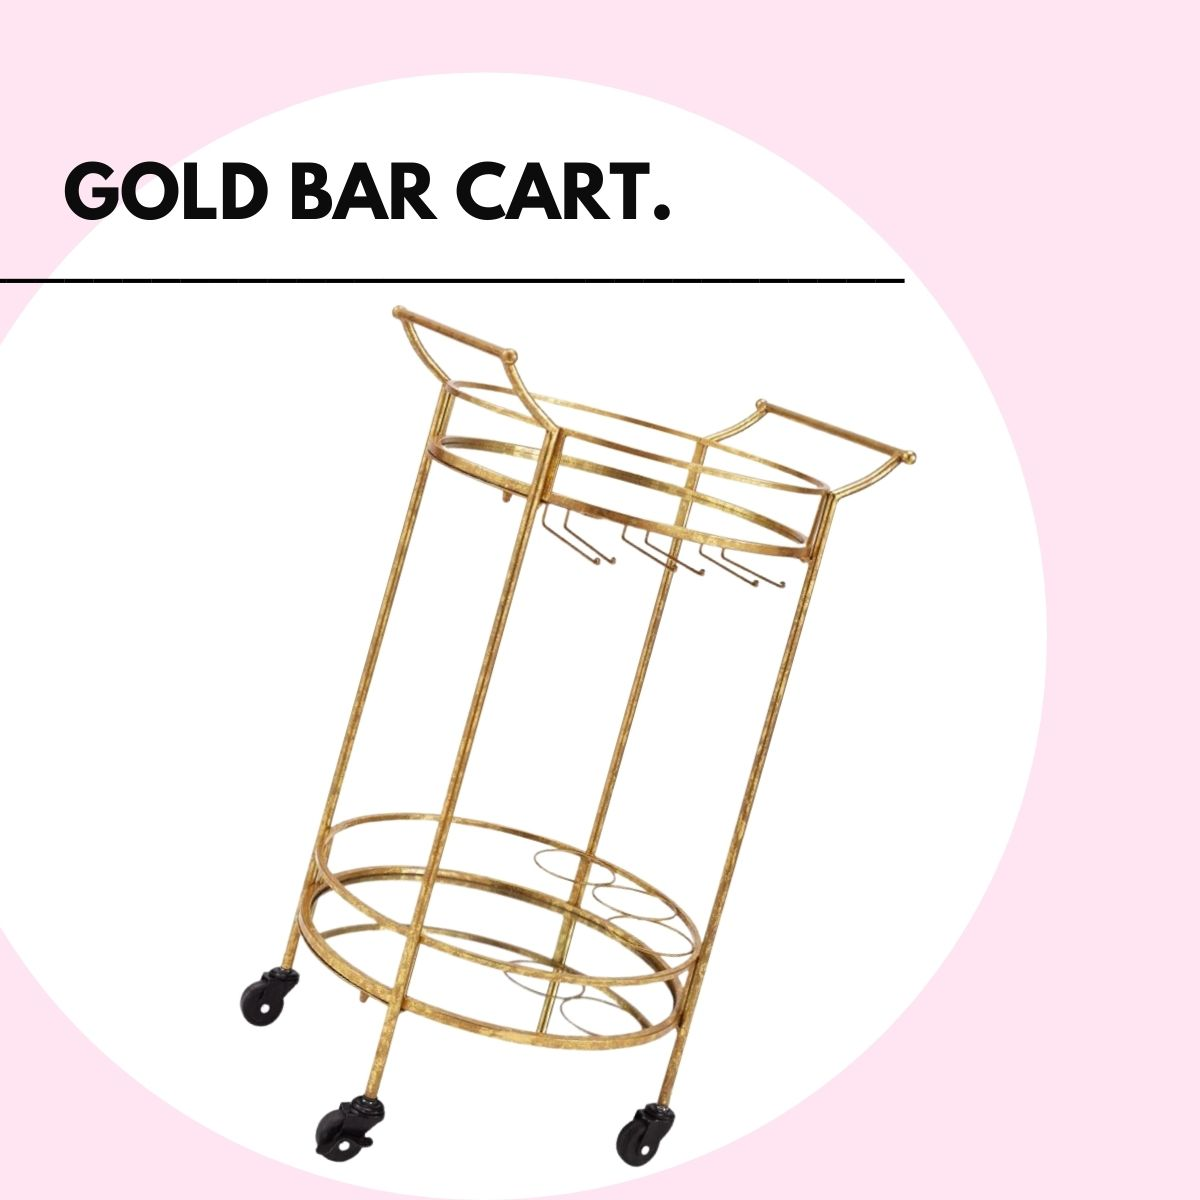 gifts for yourself - gold bar cart